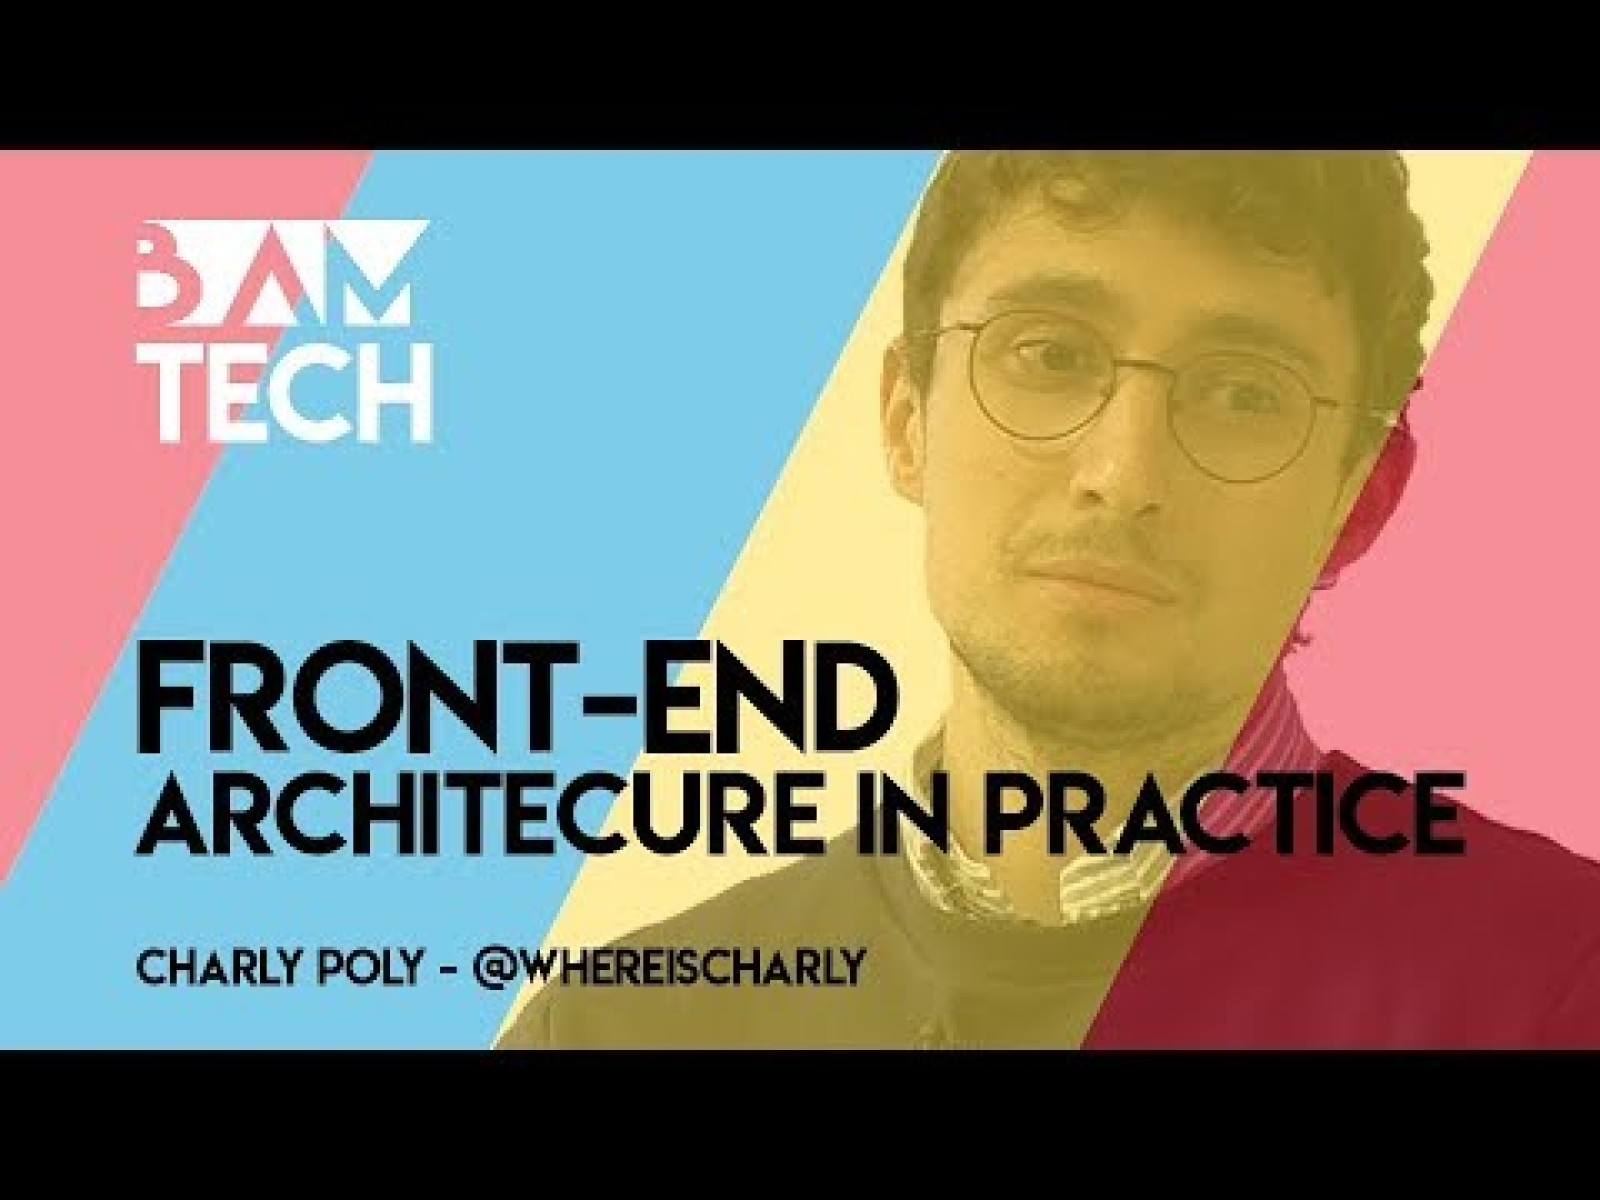 Front-end architecture in practice